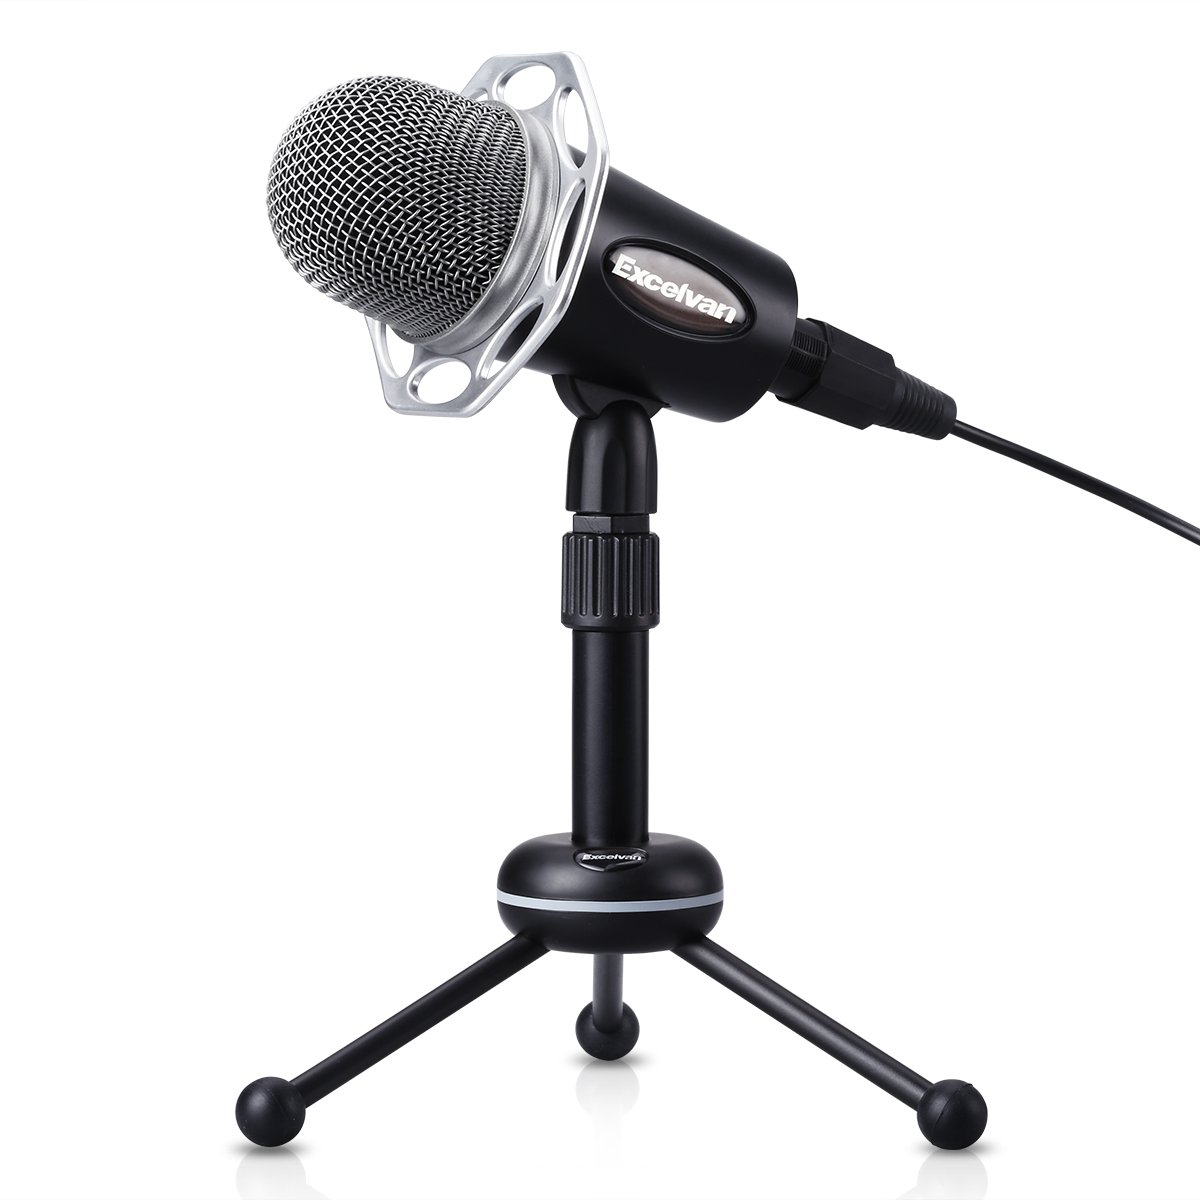 Excelvan Condenser Microphone Black Y20 3.5mm Desktop Microphone with Volume Control and Adjustable Table Tripod Stand Broadcasting Recording Podcasting Studio Mic for Mobile Phones, Laptops, Desktop by Excelvan